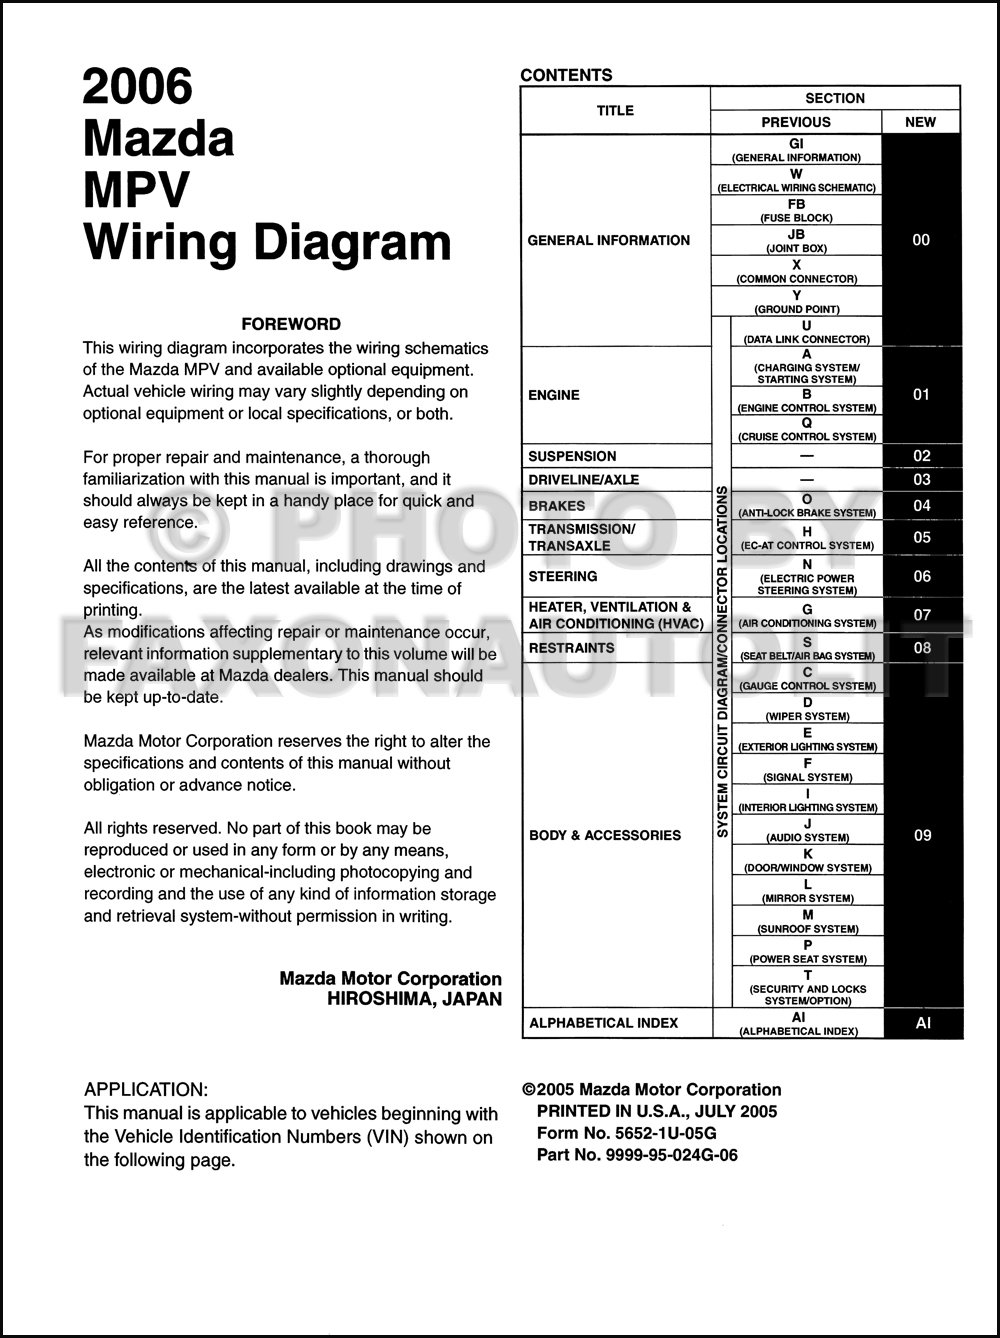 2006 Mazda Radio Wiring Diagram Starting Know About 3 Mpv Manual Original Stereo 6